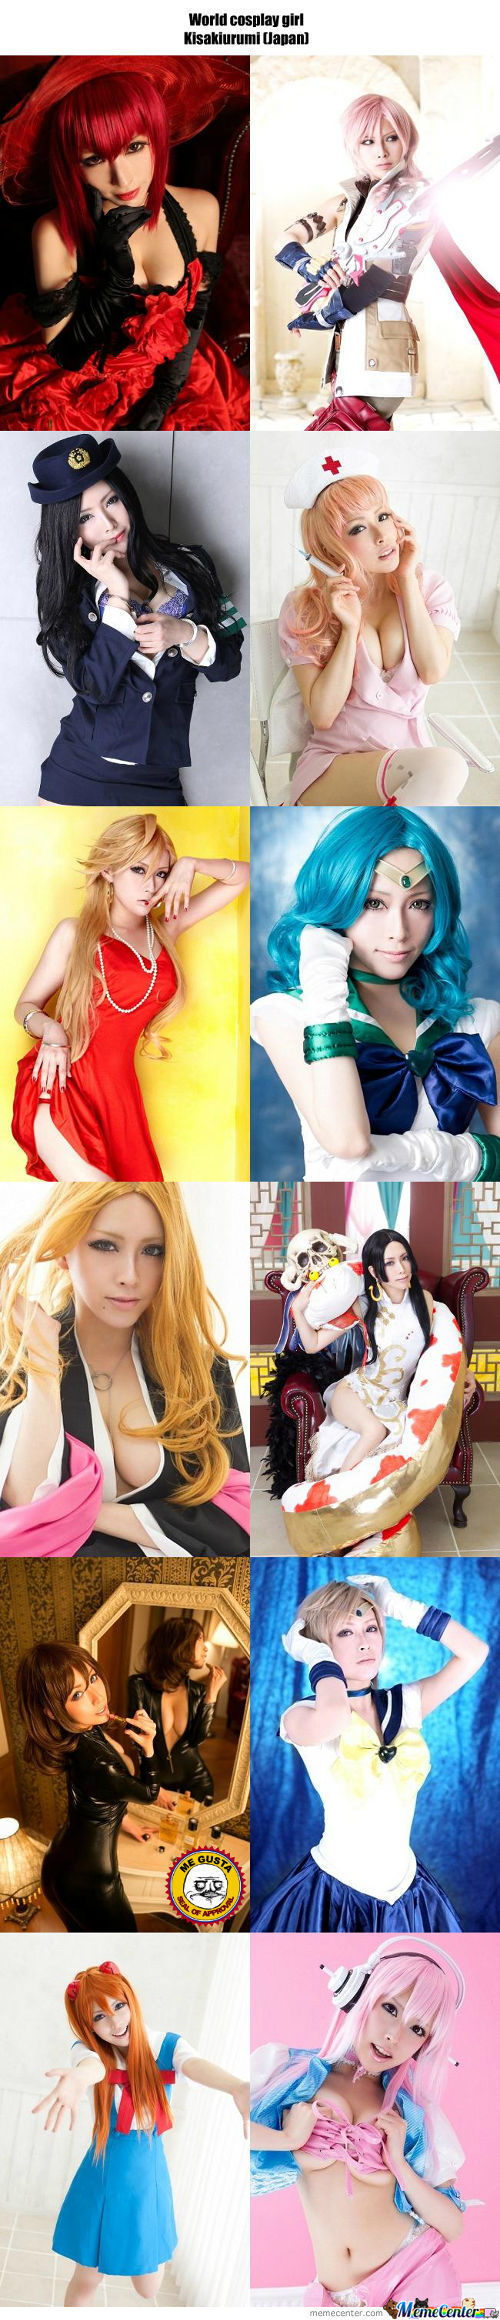 Cosplay Girl 18 : Kisakiurumi (Japan)